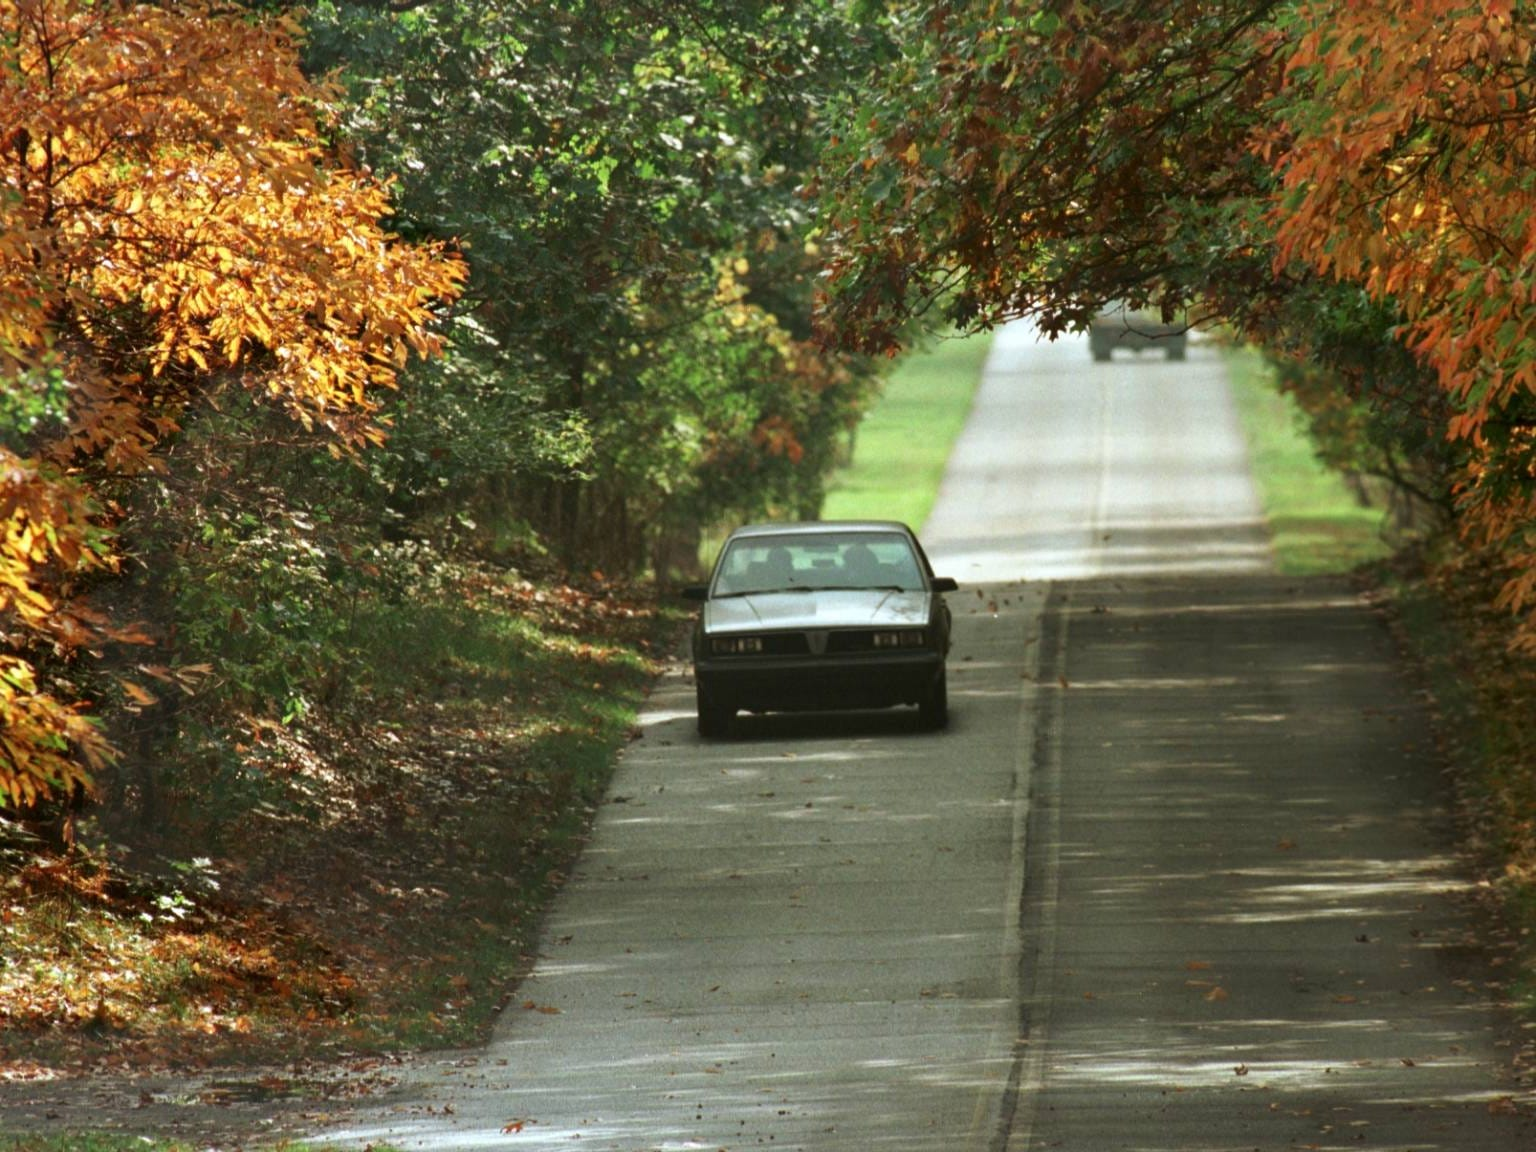 A car travels through a canopy of leaves on East State Park Road in Indiana Dunes State Park.